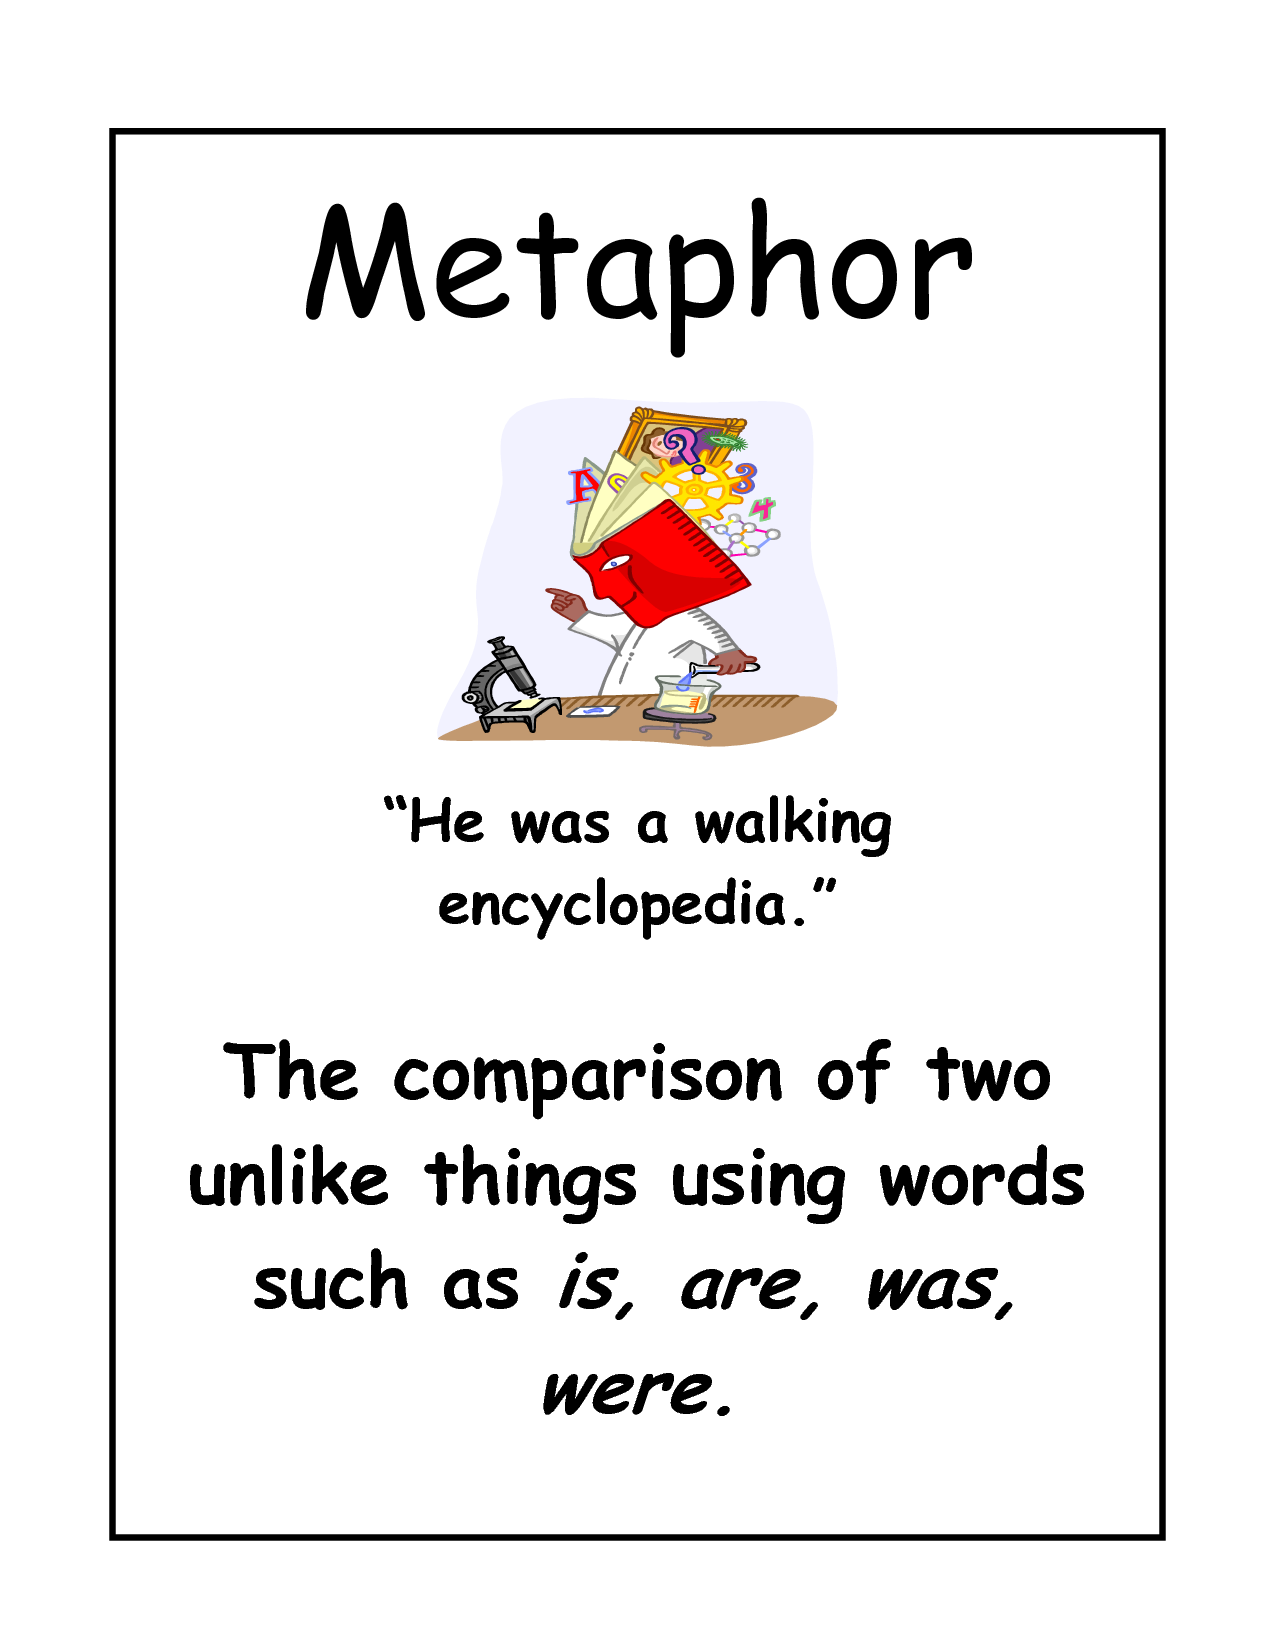 Metaphors is a figure of speech that achieves its